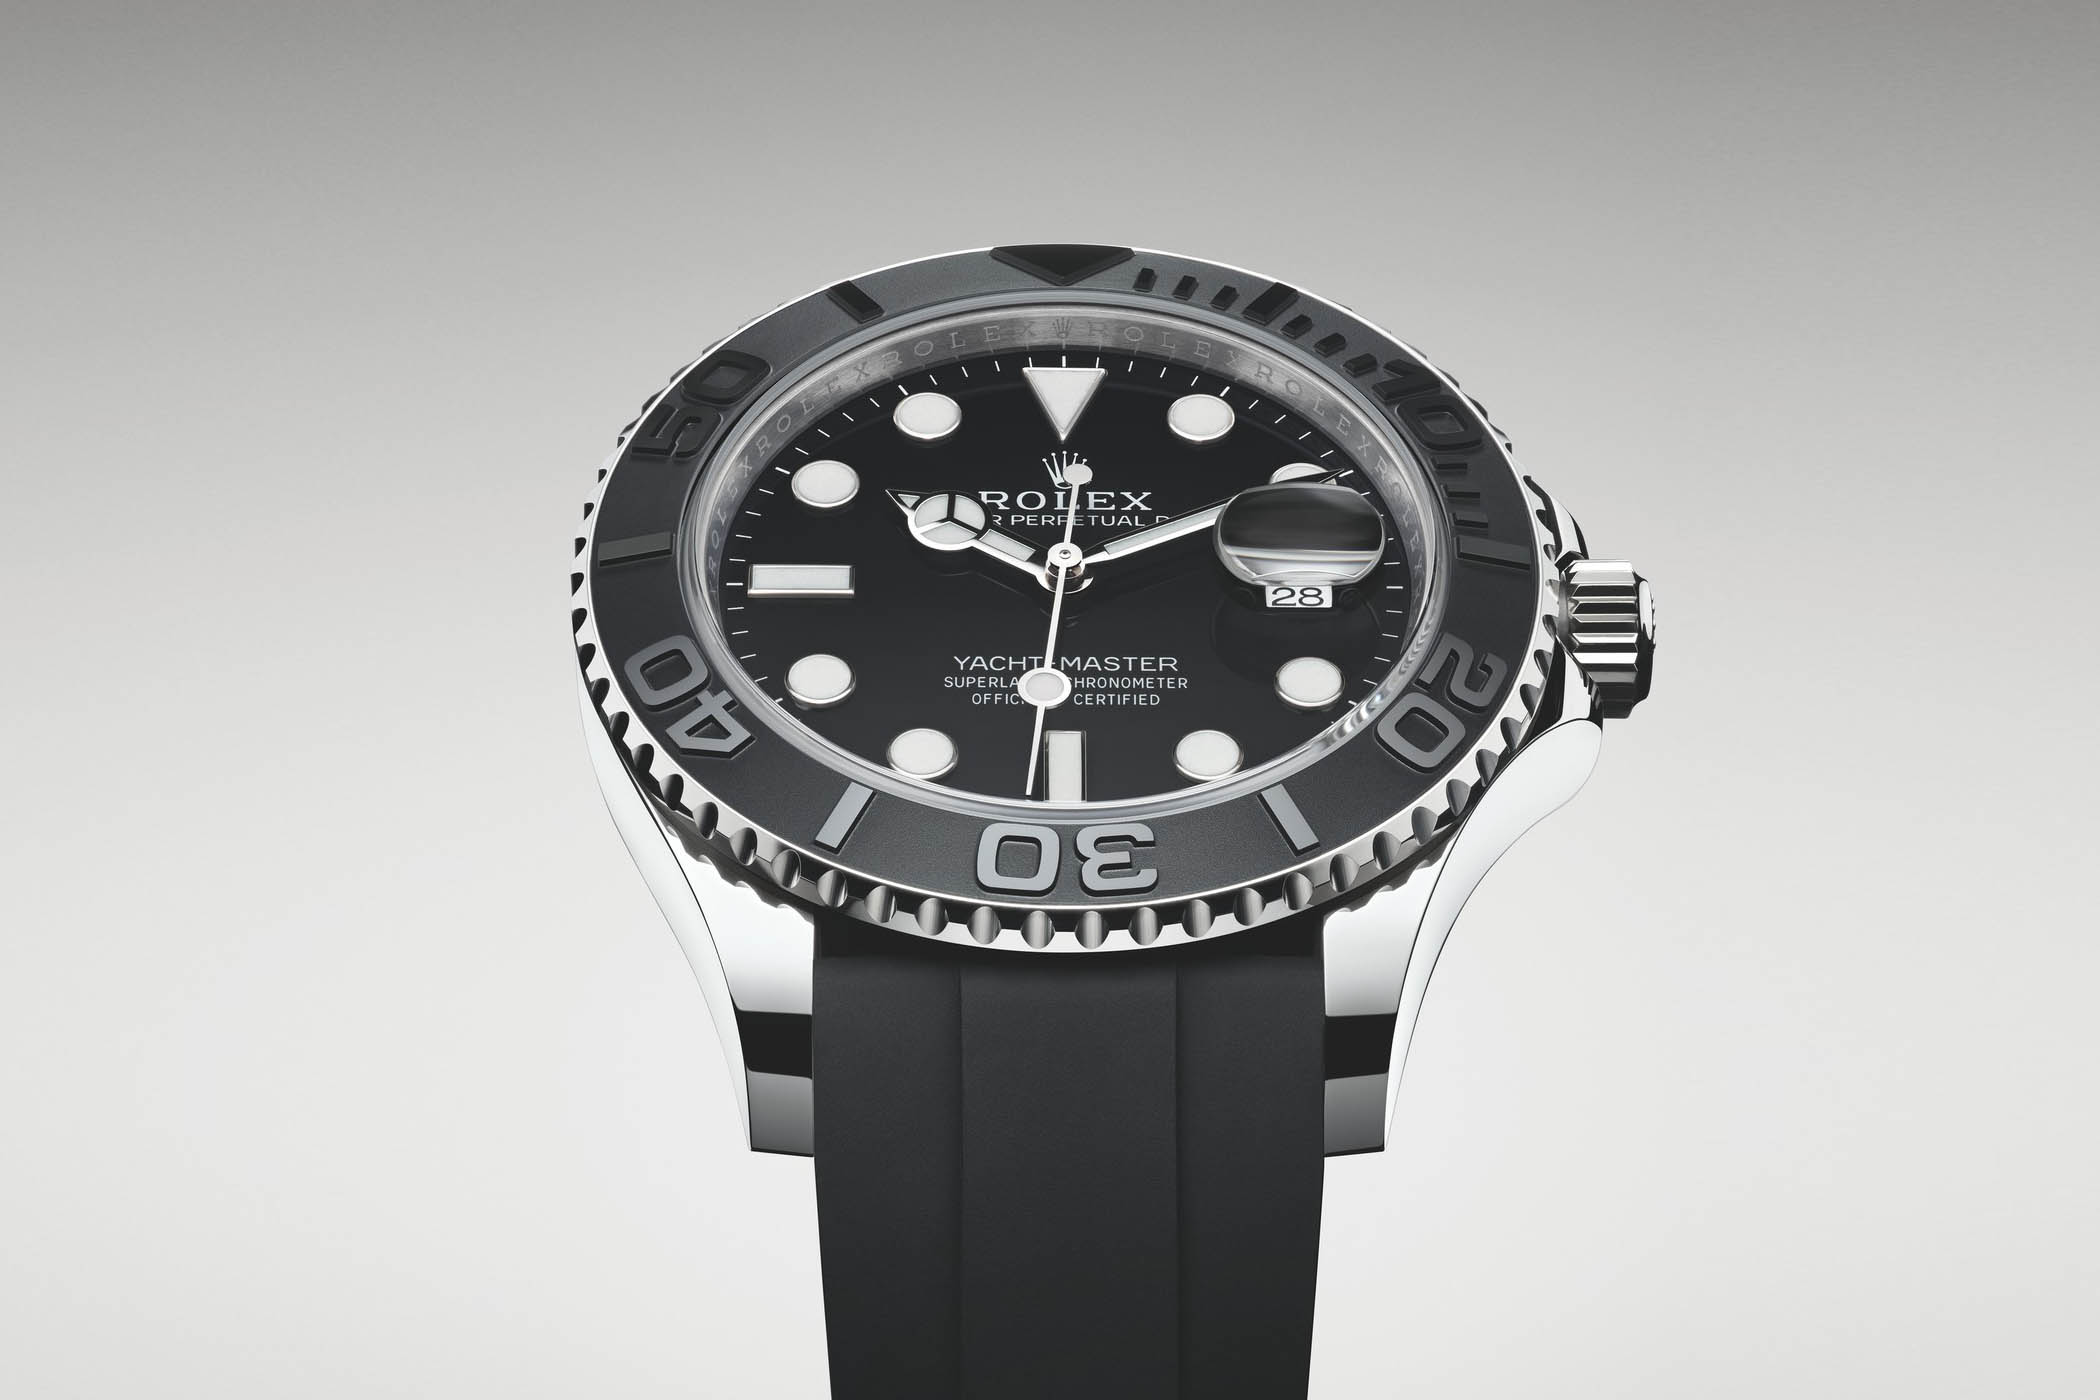 82f05434f Baselworld 2019 Rolex Yacht-Master 42 ref. 226659 – White Gold, Black Ceramic  Bezel and OysterFlex